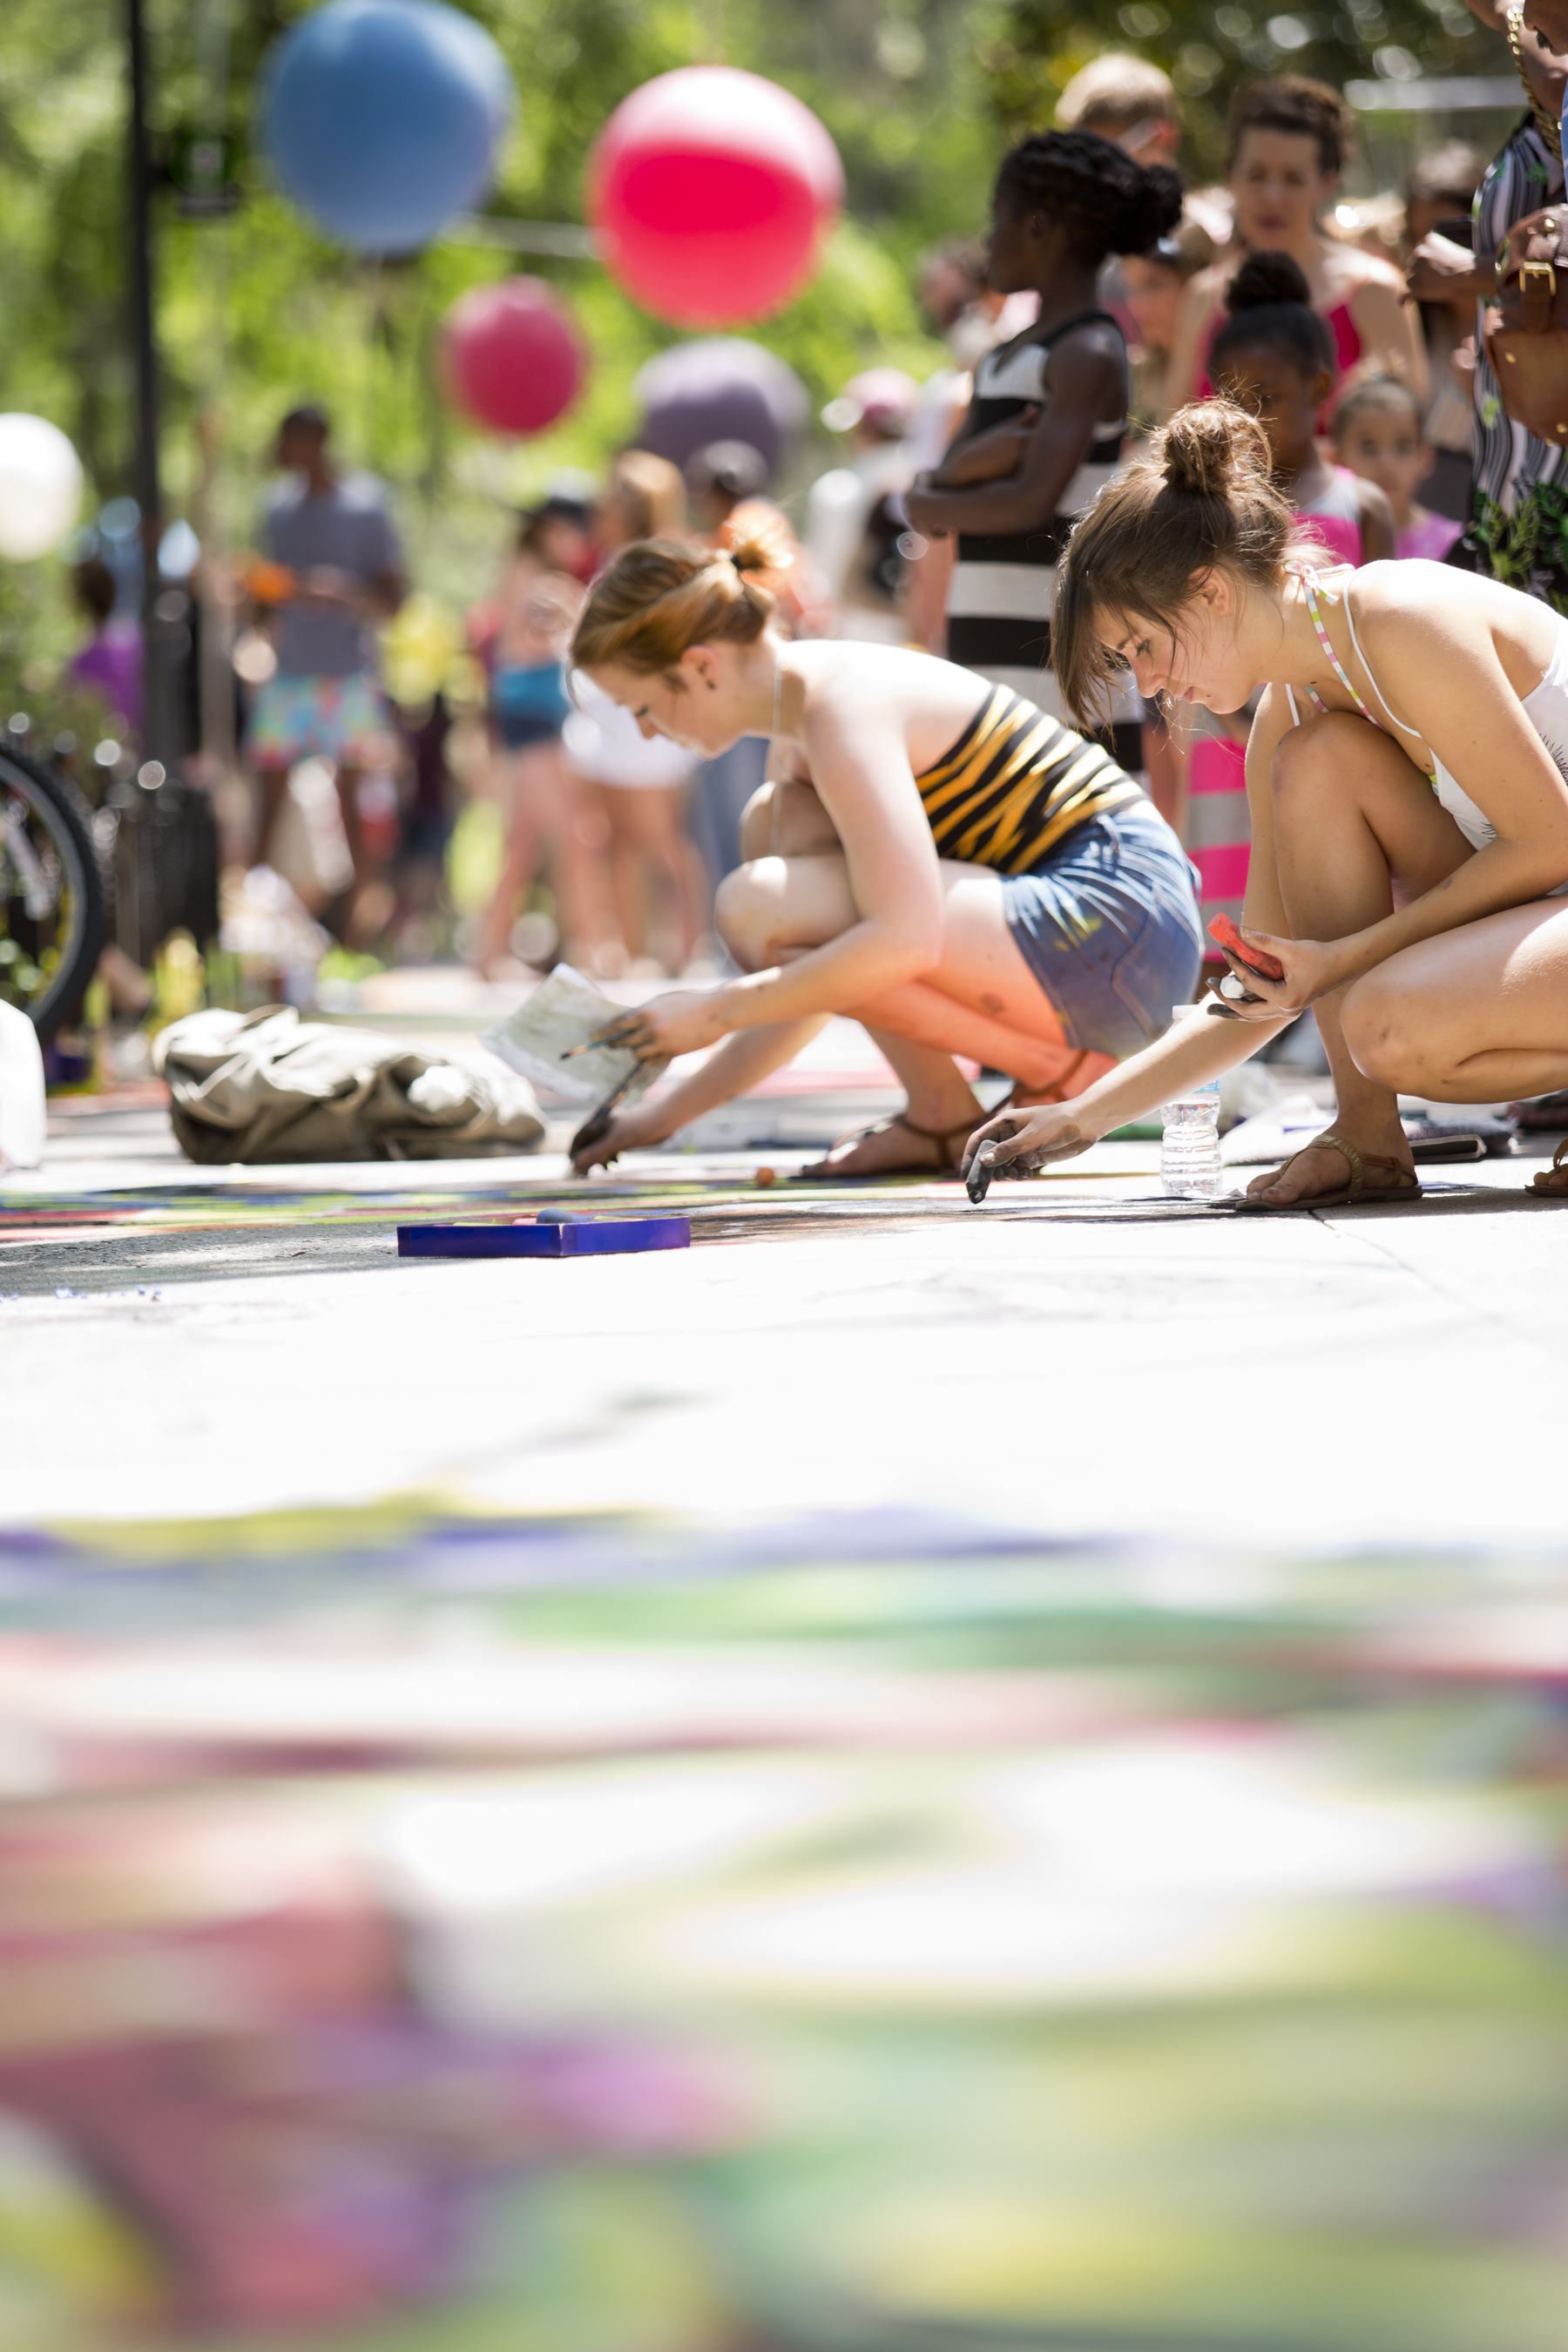 SCAD Hosts 2014 Sidewalk Arts Festival, 4/26